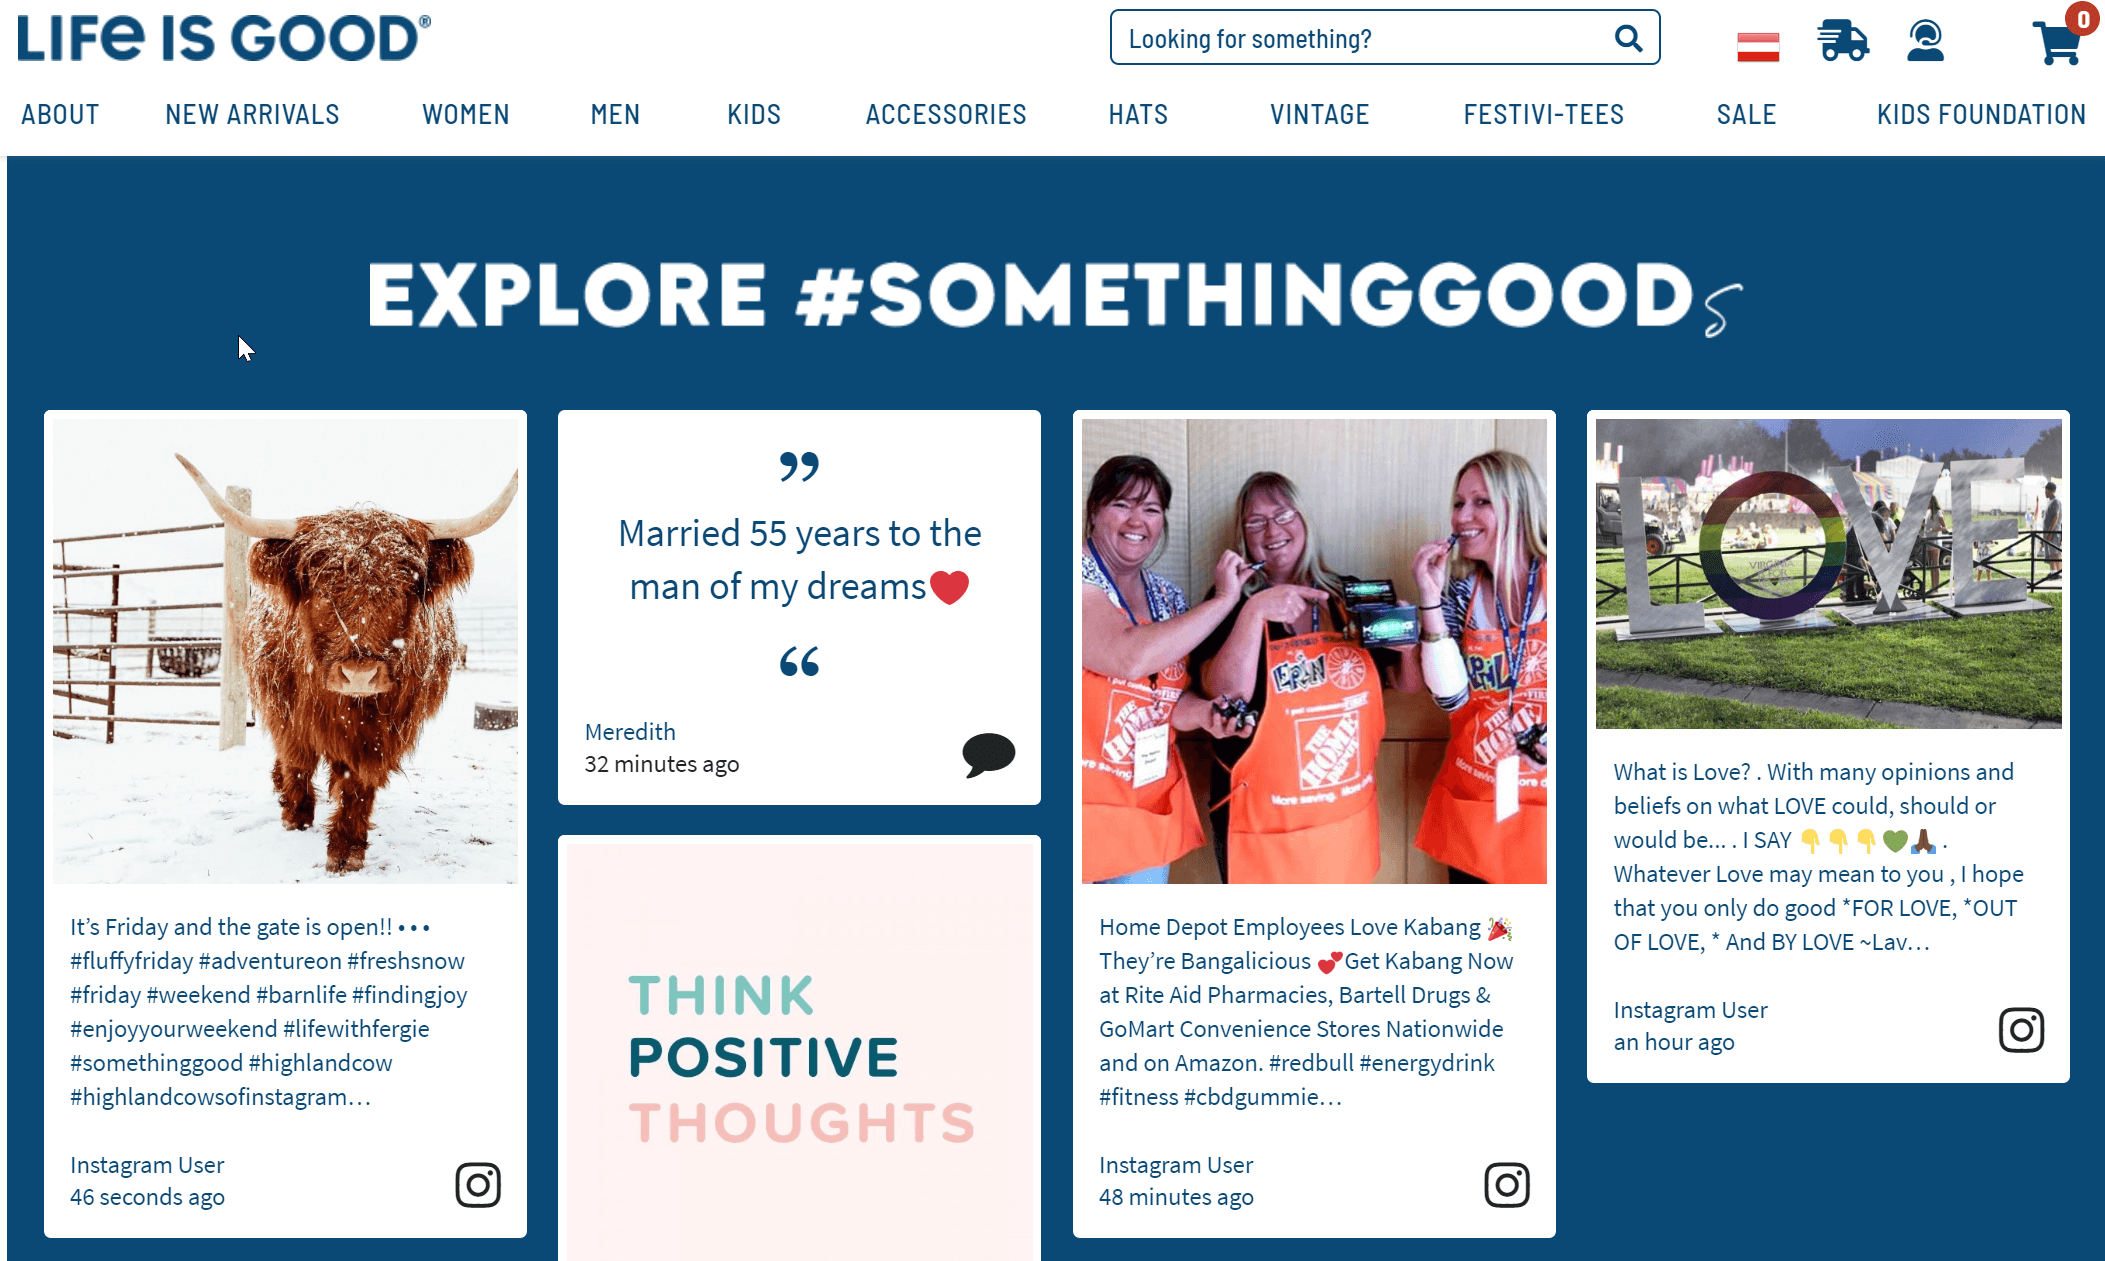 social media feed for website examples life is goog #somethinggood hashtag fundraising campaign